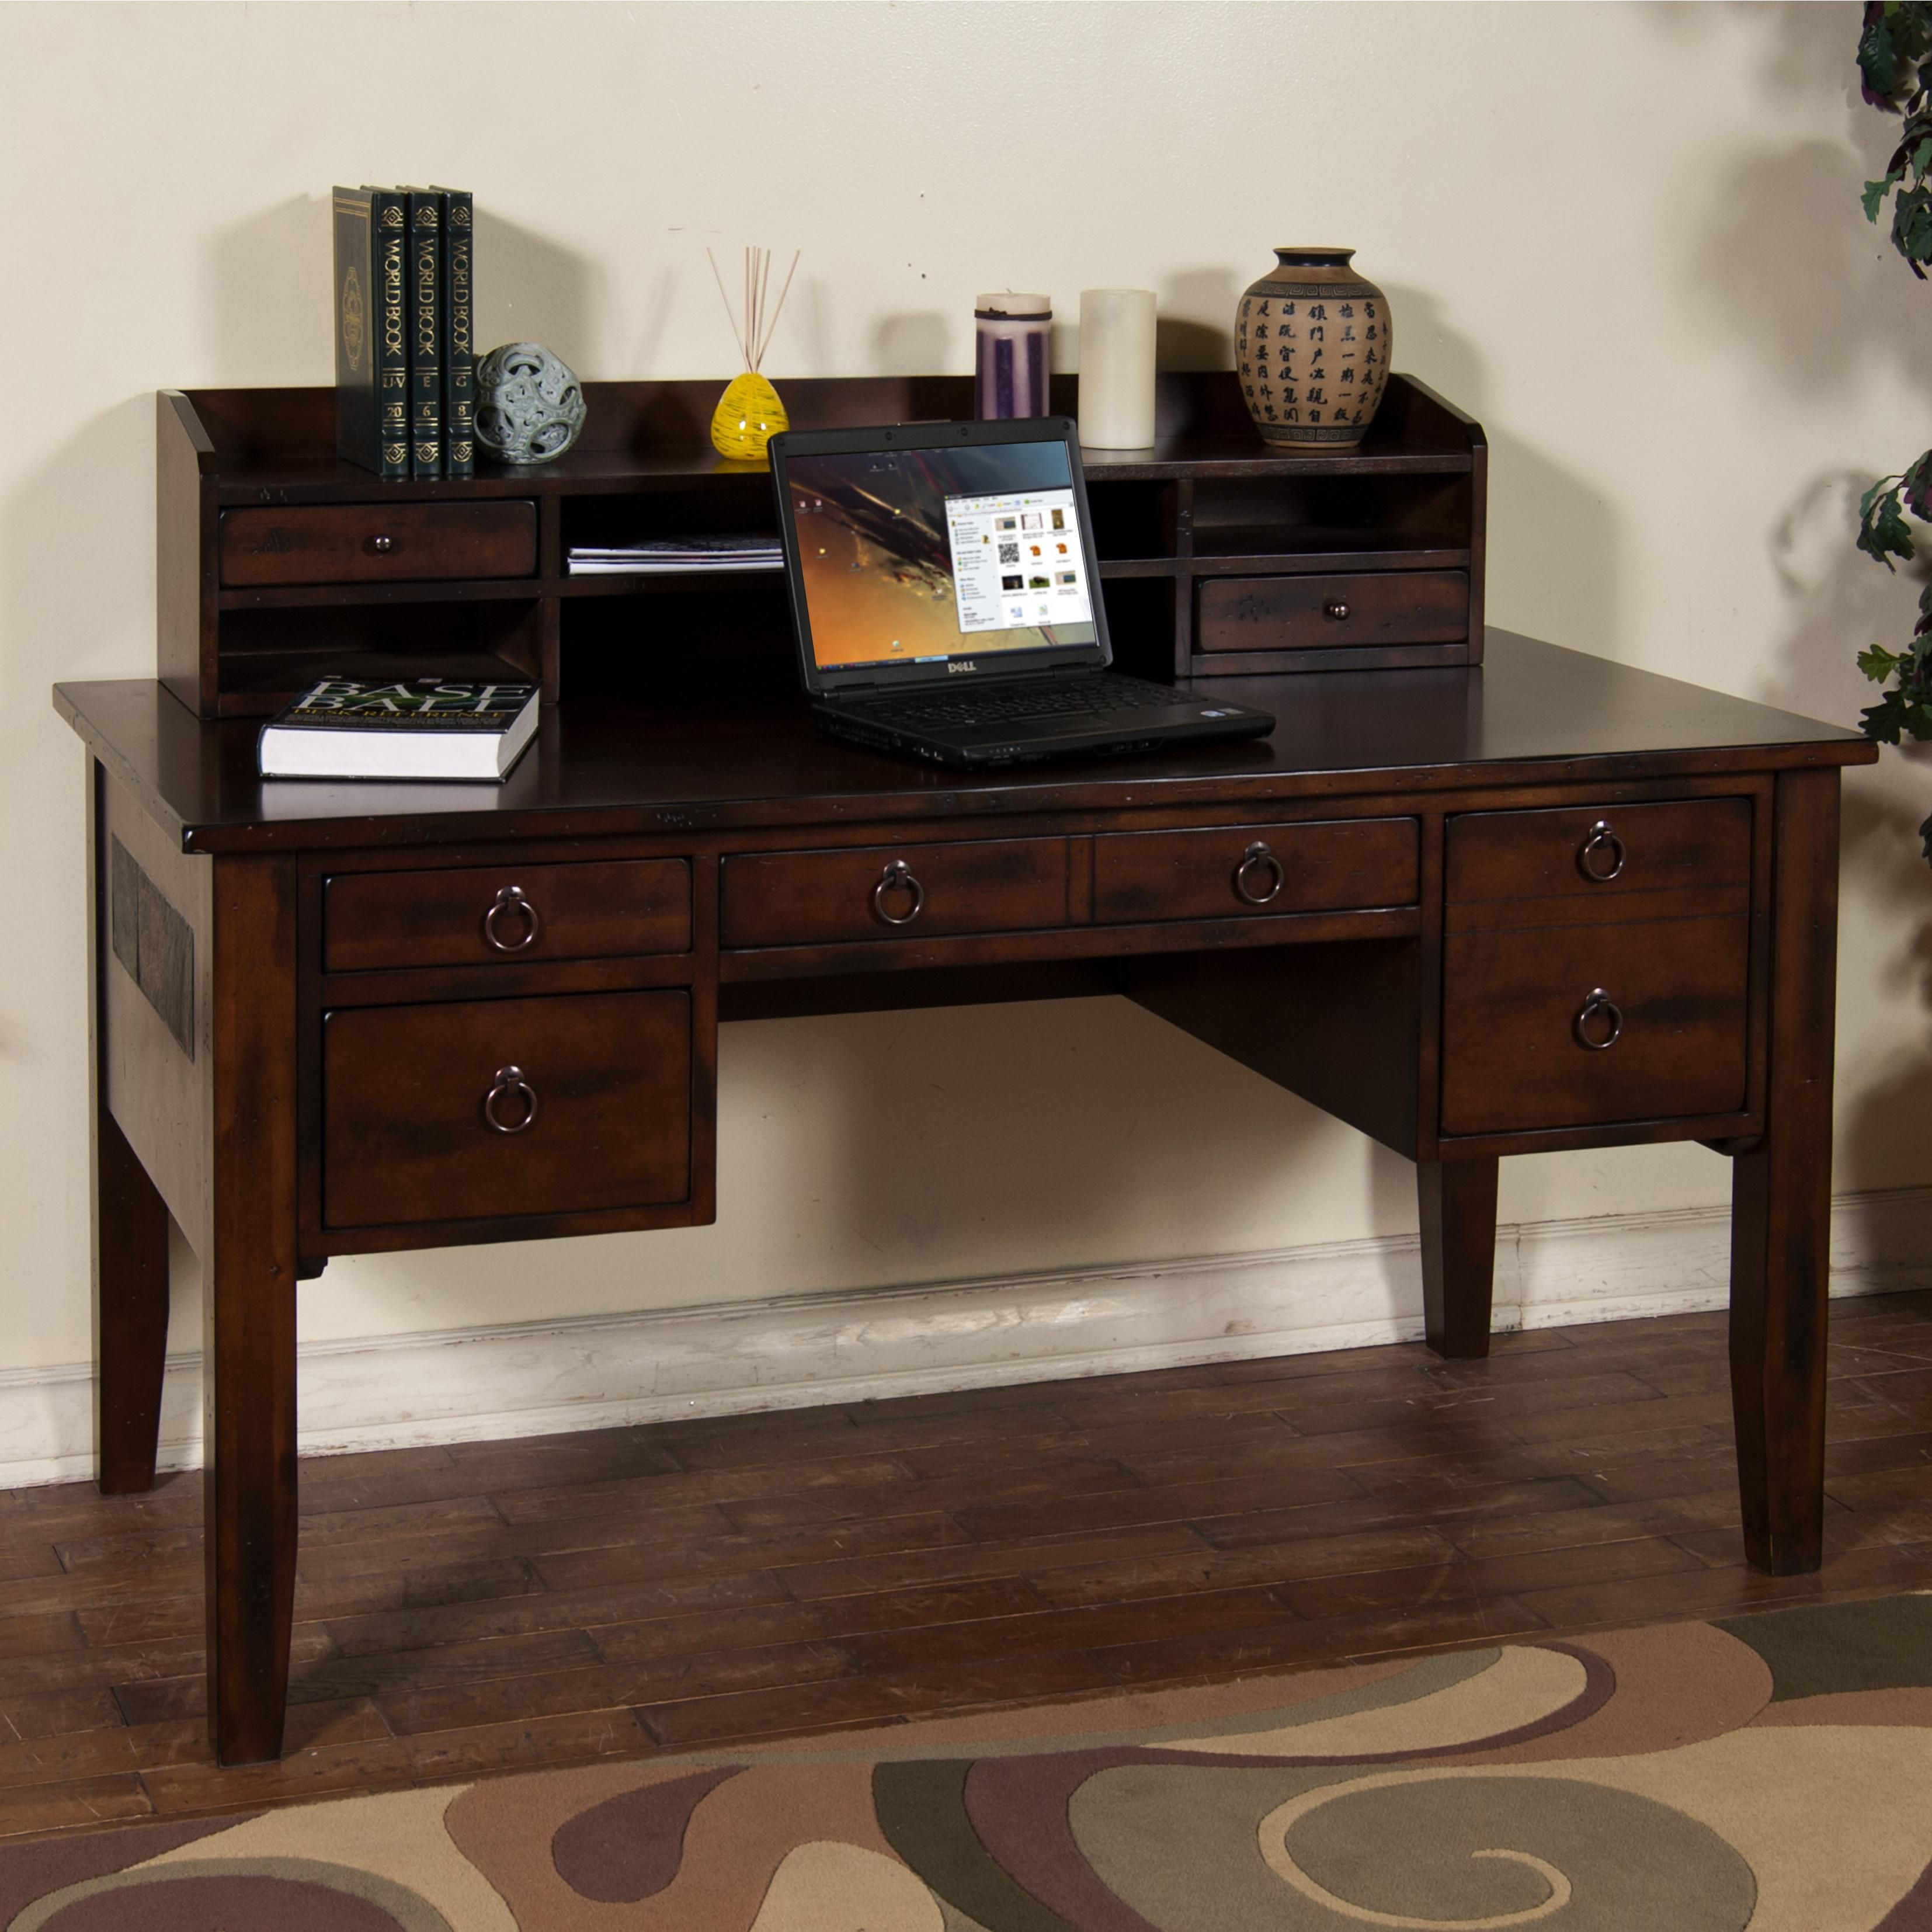 desk kathyirelandhomebymartianhuntingtonoxforddeskforlhfburnish cfm executive oxford huntington hutch furniture hayneedle computer burnished shaped handed left with martin l master product and